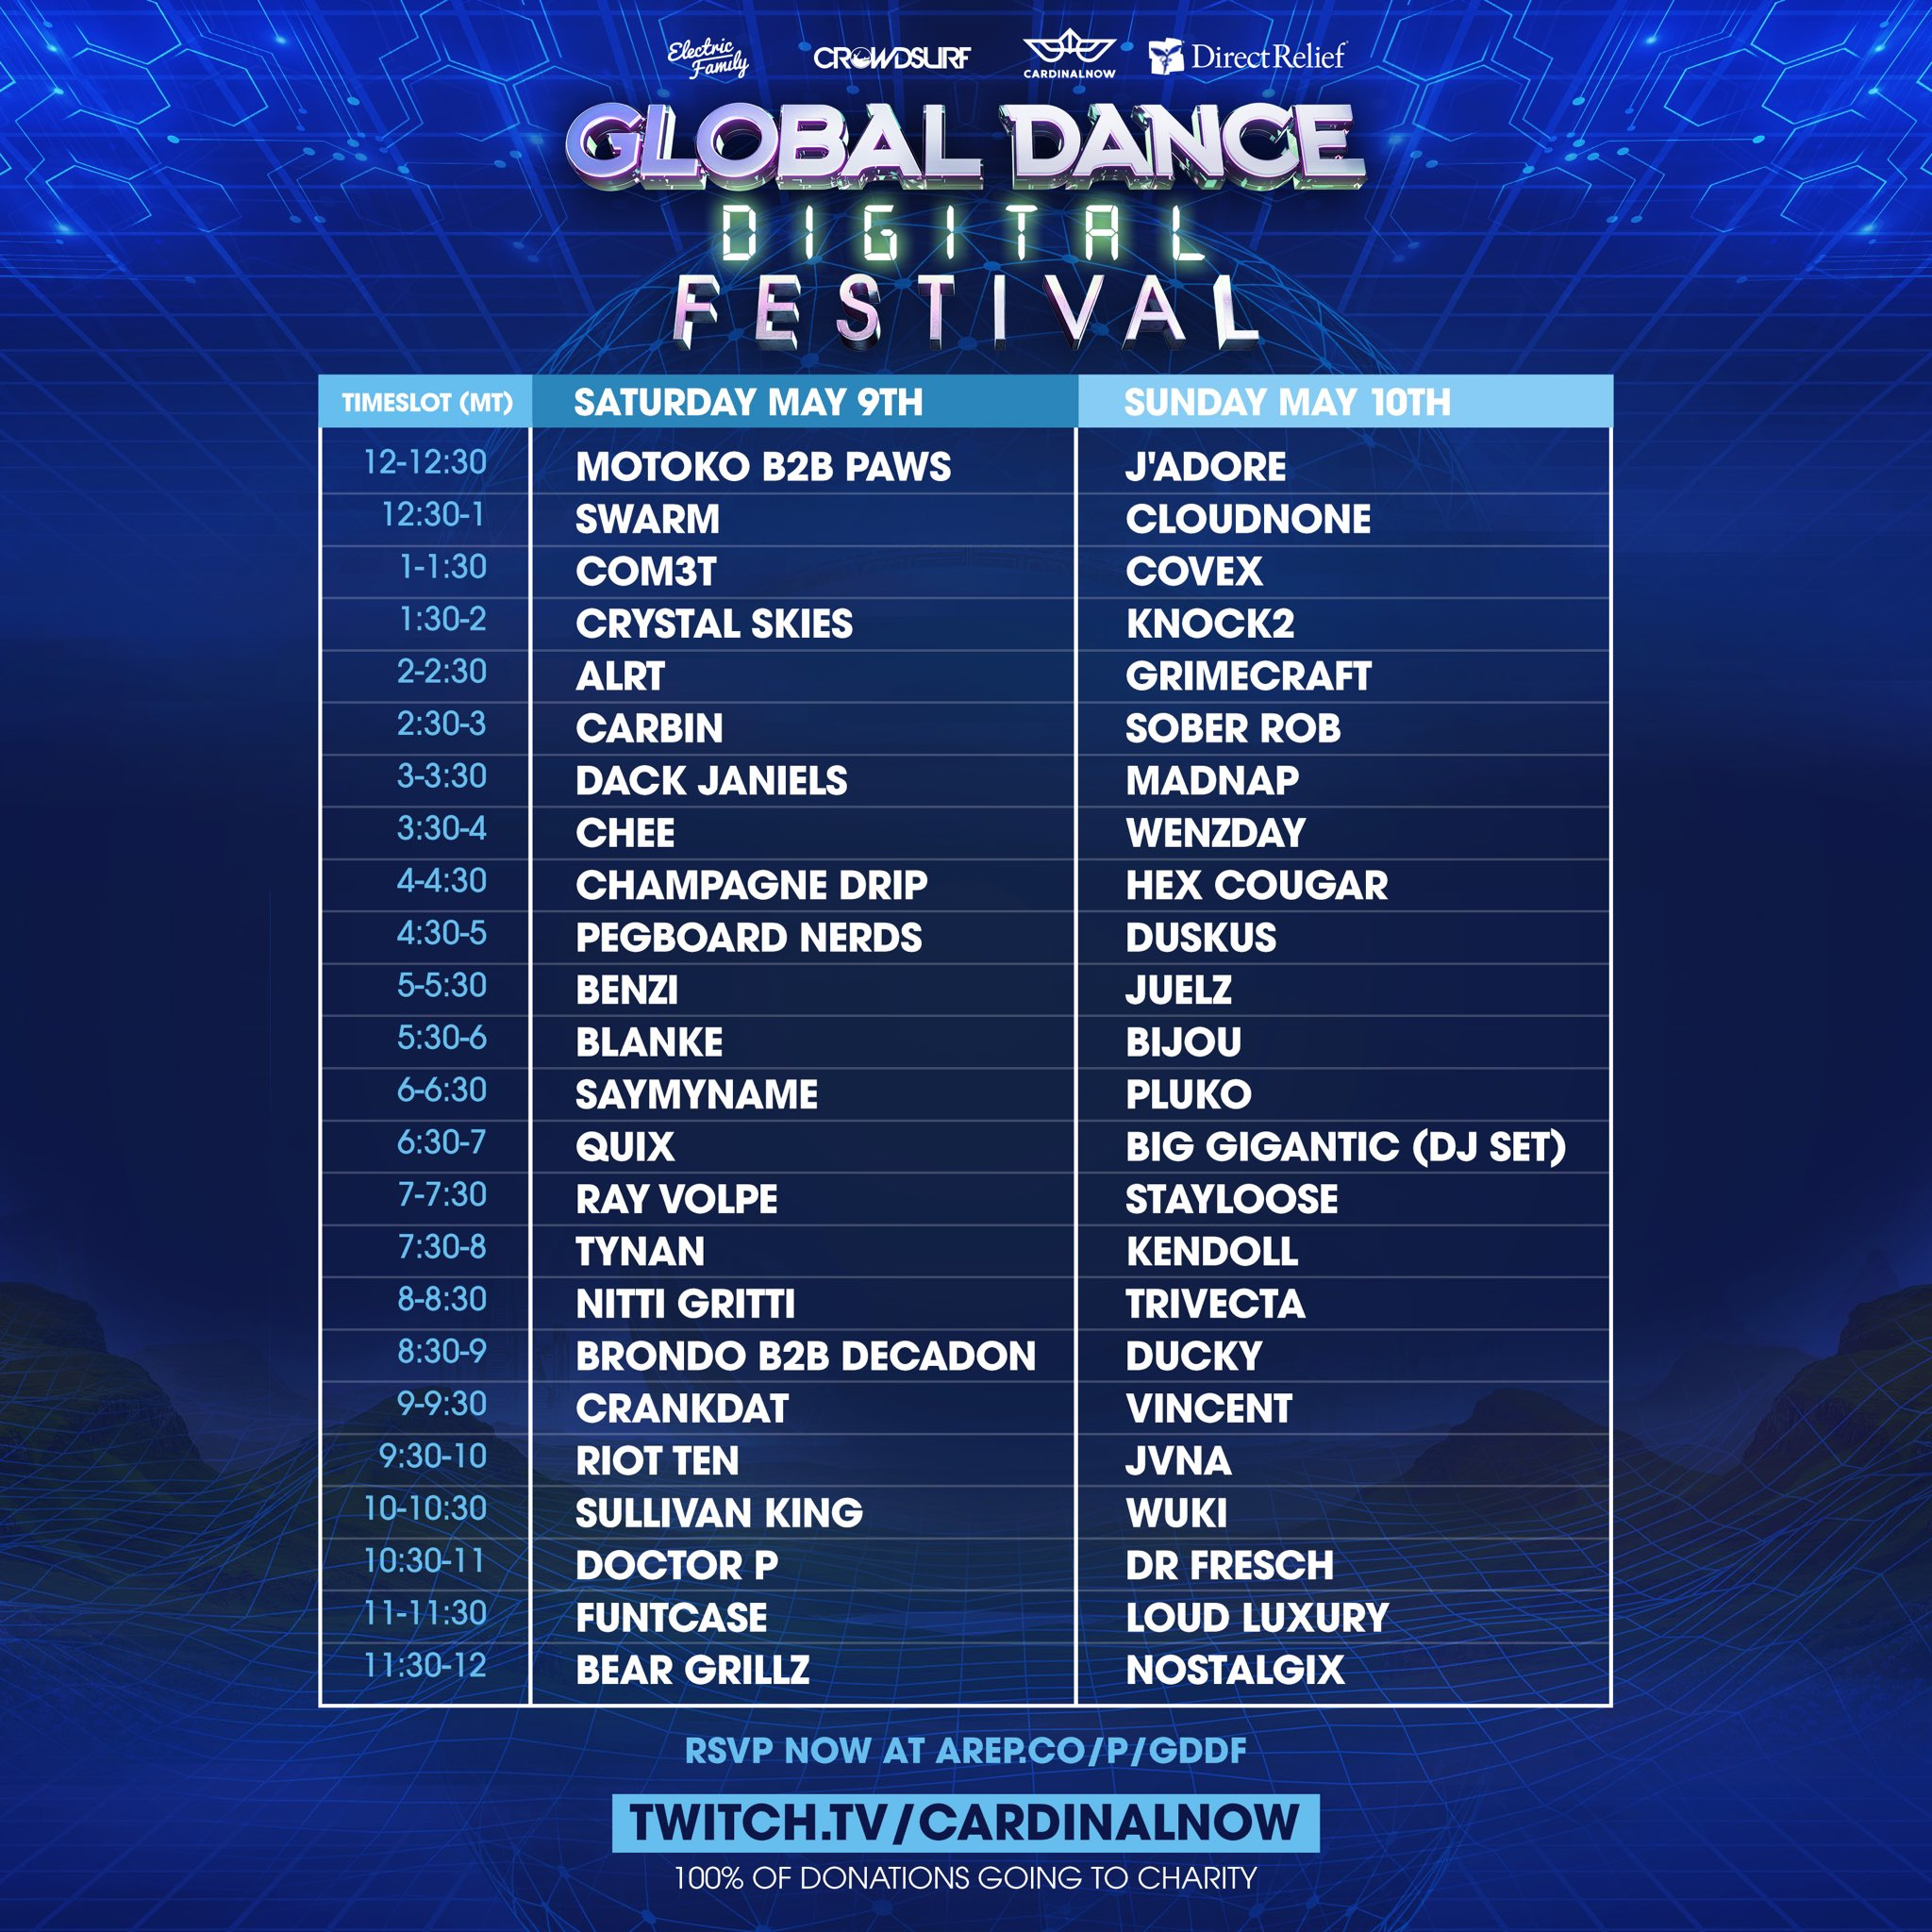 Global Dance Digital Festival - Schedule